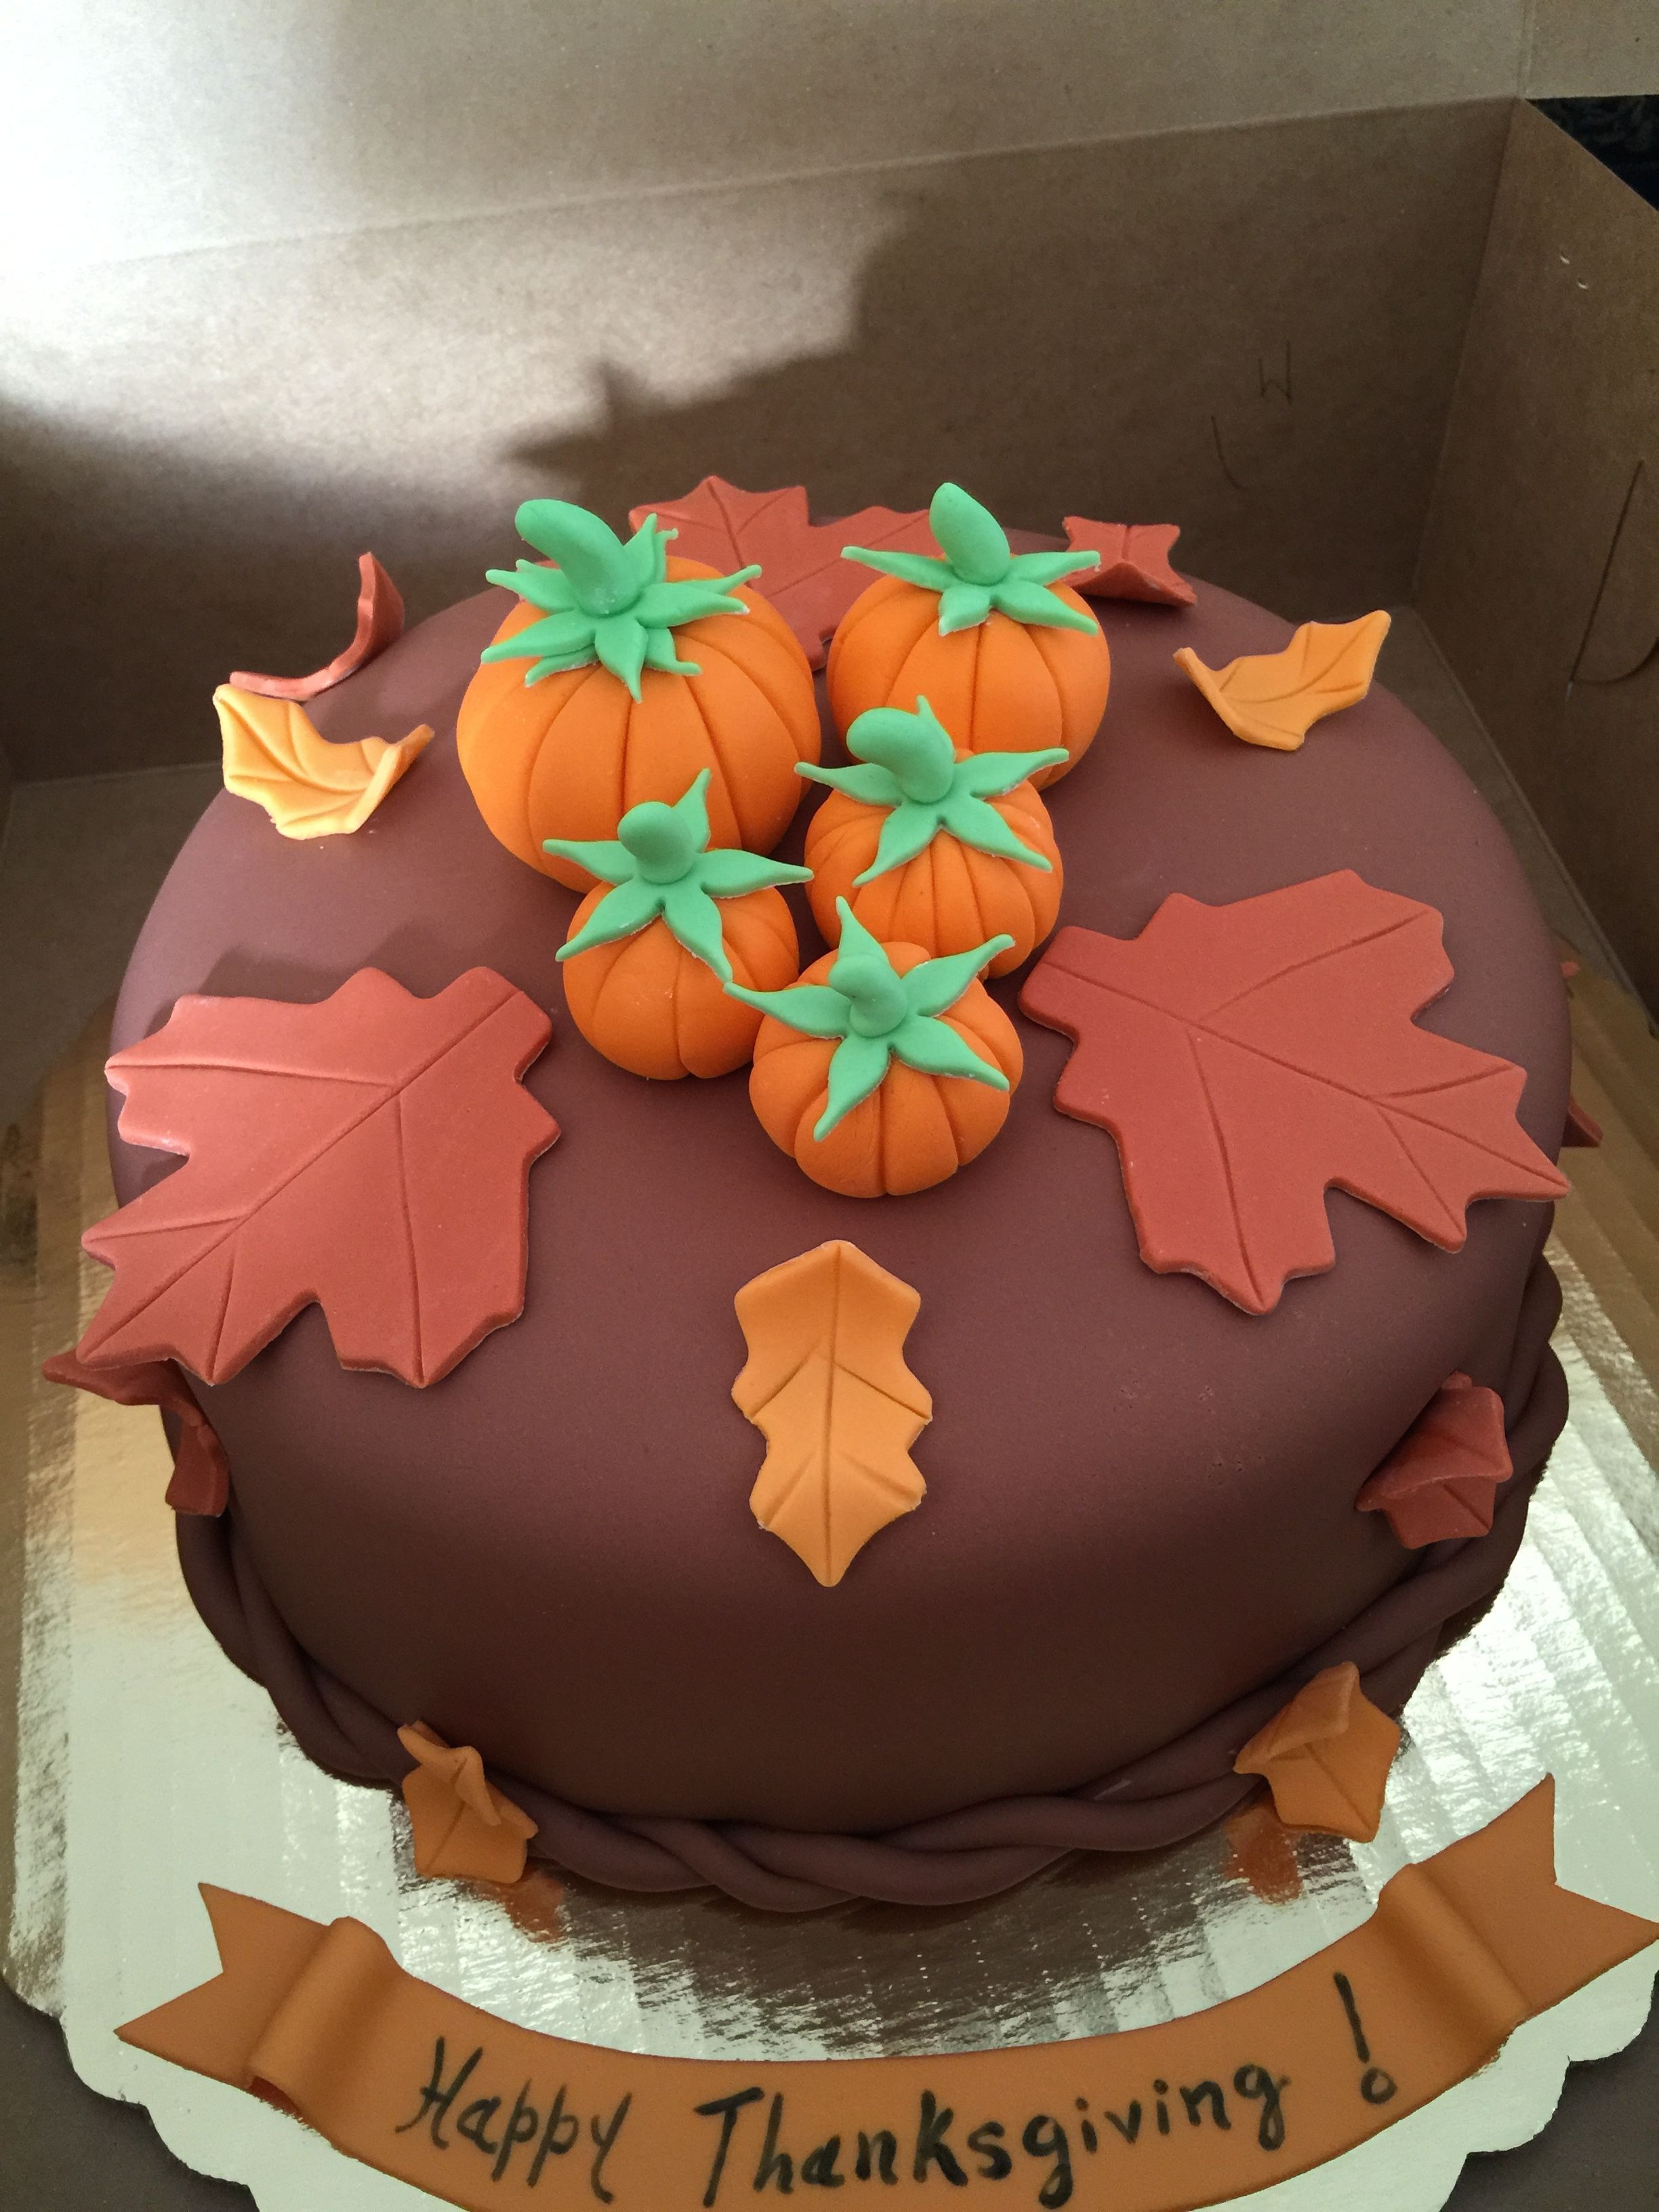 Thanksgiving Fondant Cake Made By Www Arlyscakes Com Thanksgiving Cakes Decorating Turkey Cake Thanksgiving Cakes